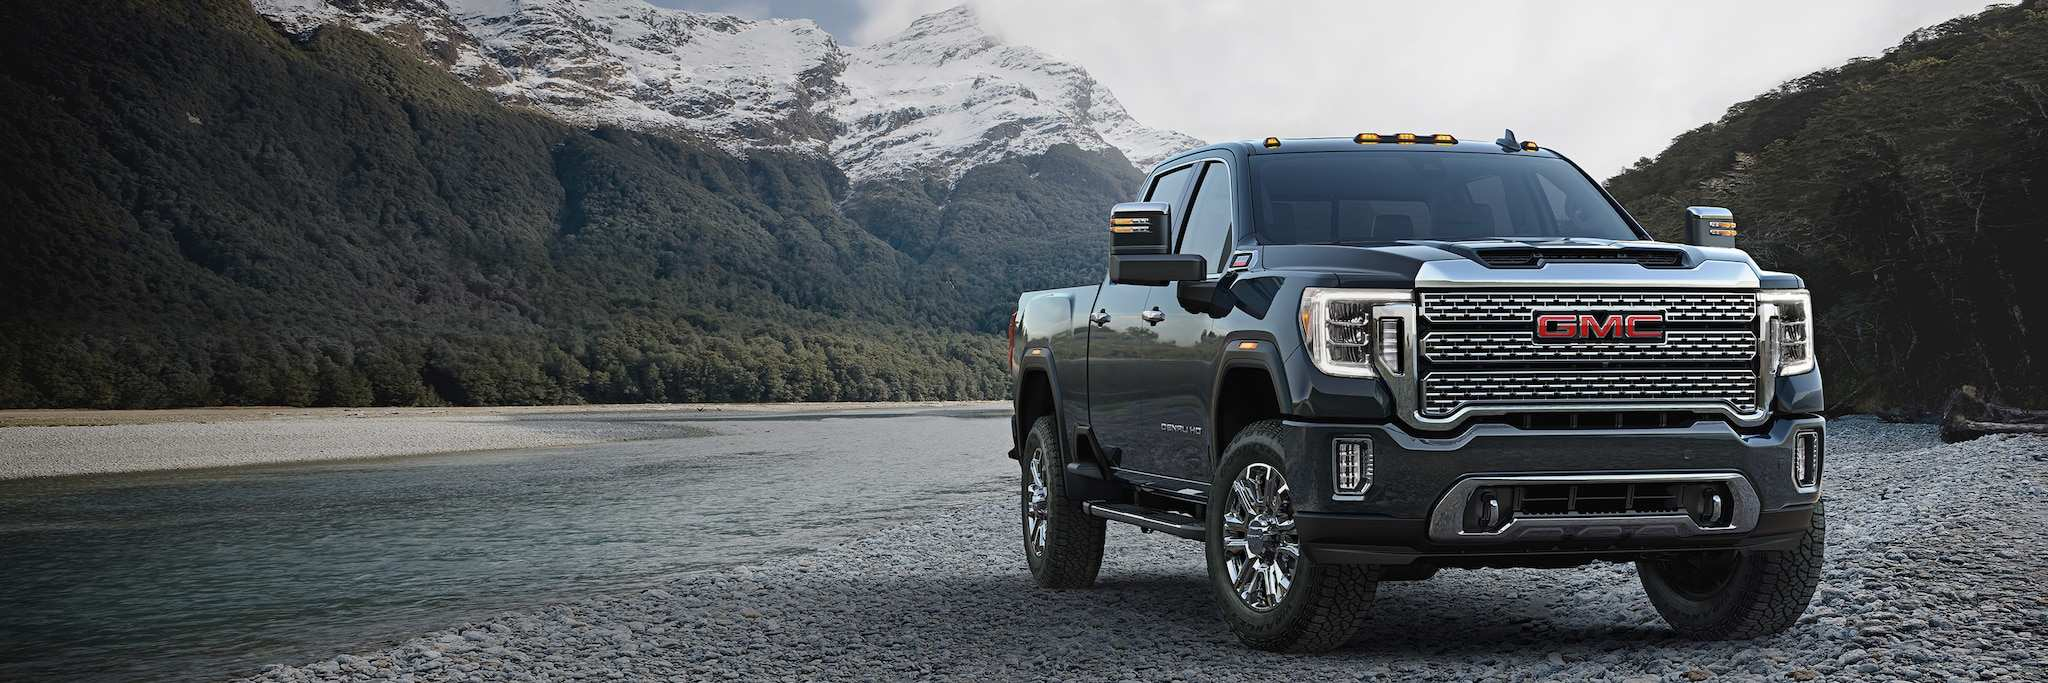 55 Concept of When Will The 2020 Gmc Denali Be Available Picture for When Will The 2020 Gmc Denali Be Available